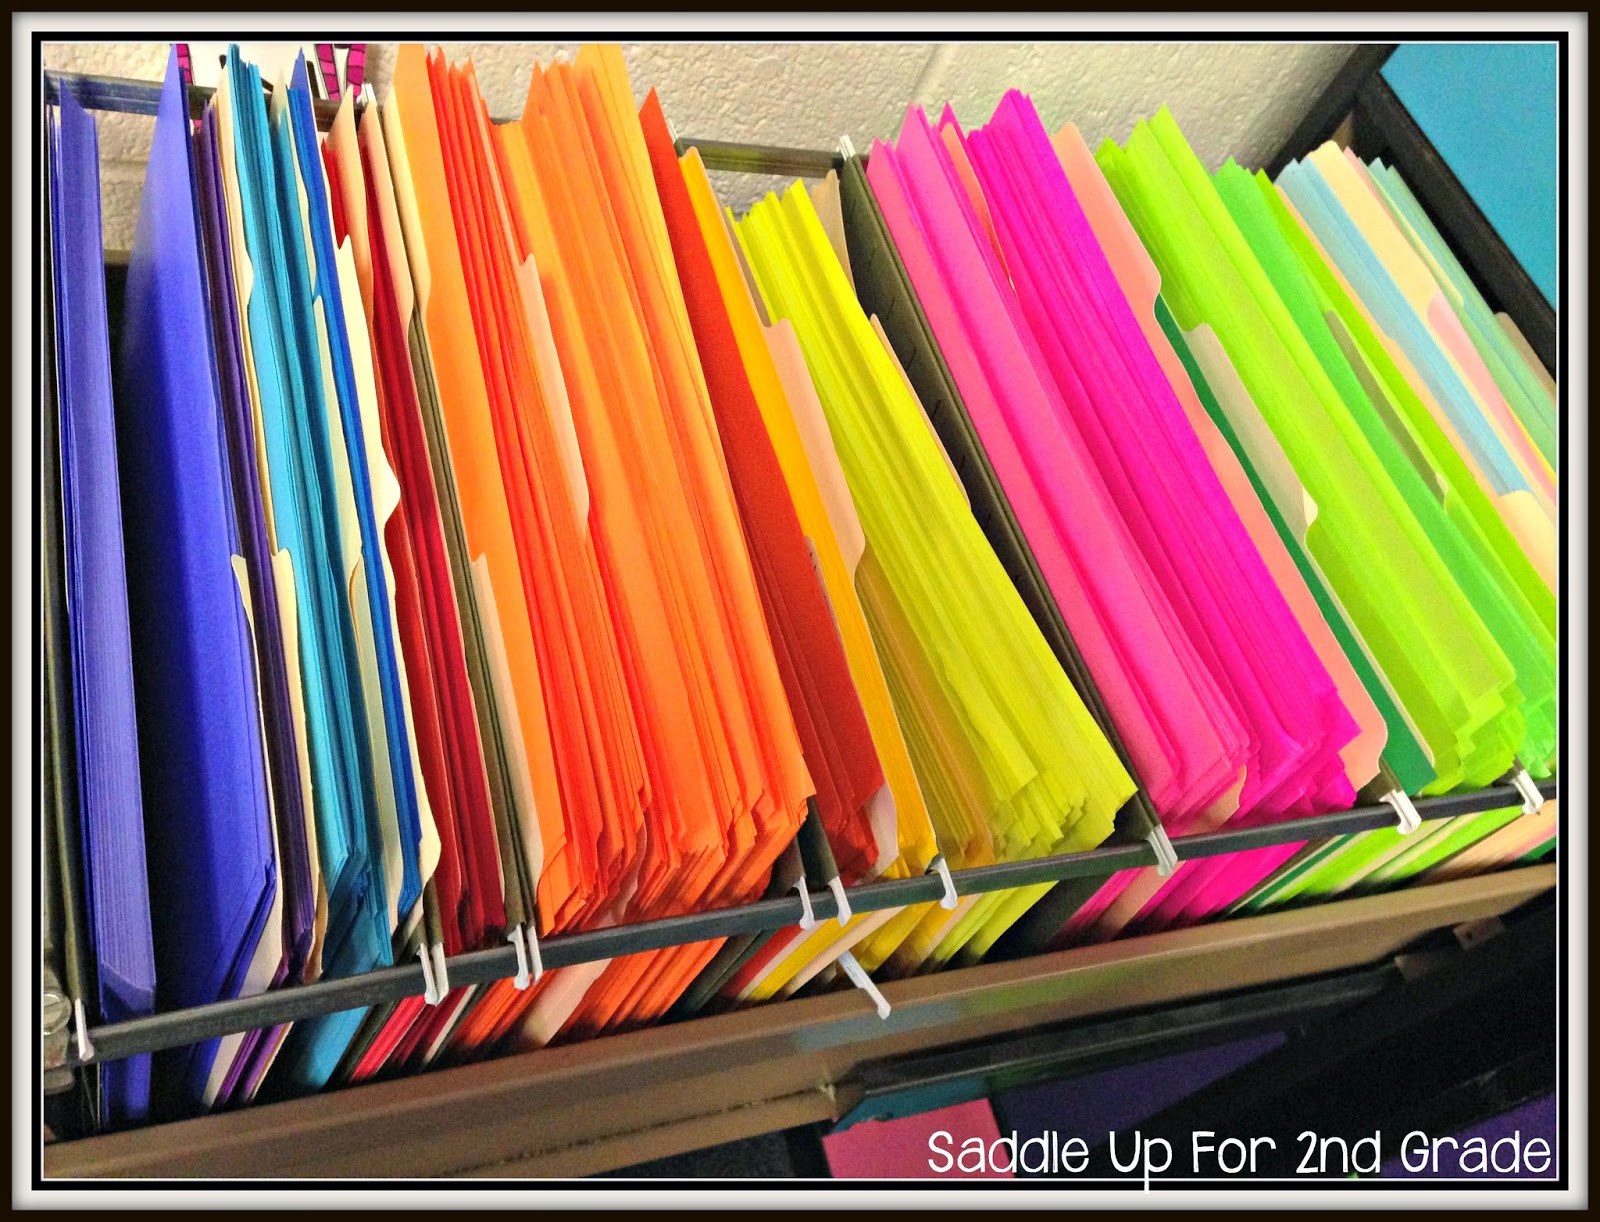 Organizing colored paper by Saddle Up For 2nd Grade